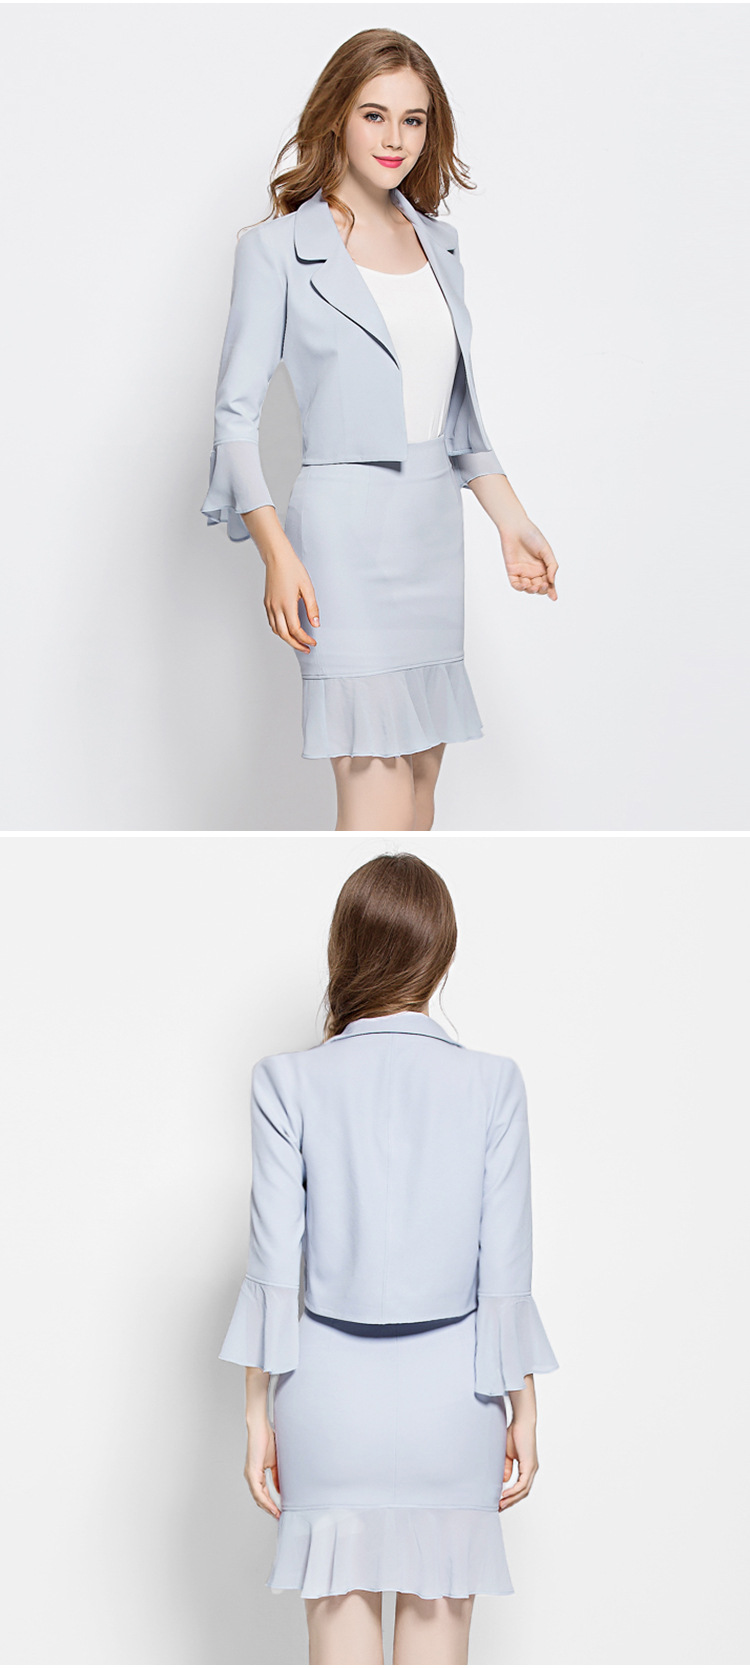 Women Elegant Cute Spring Skirt Suit Wear To Work Office Business career OL Jacket blazer & Skirts Suit 2 Piece Sets 005